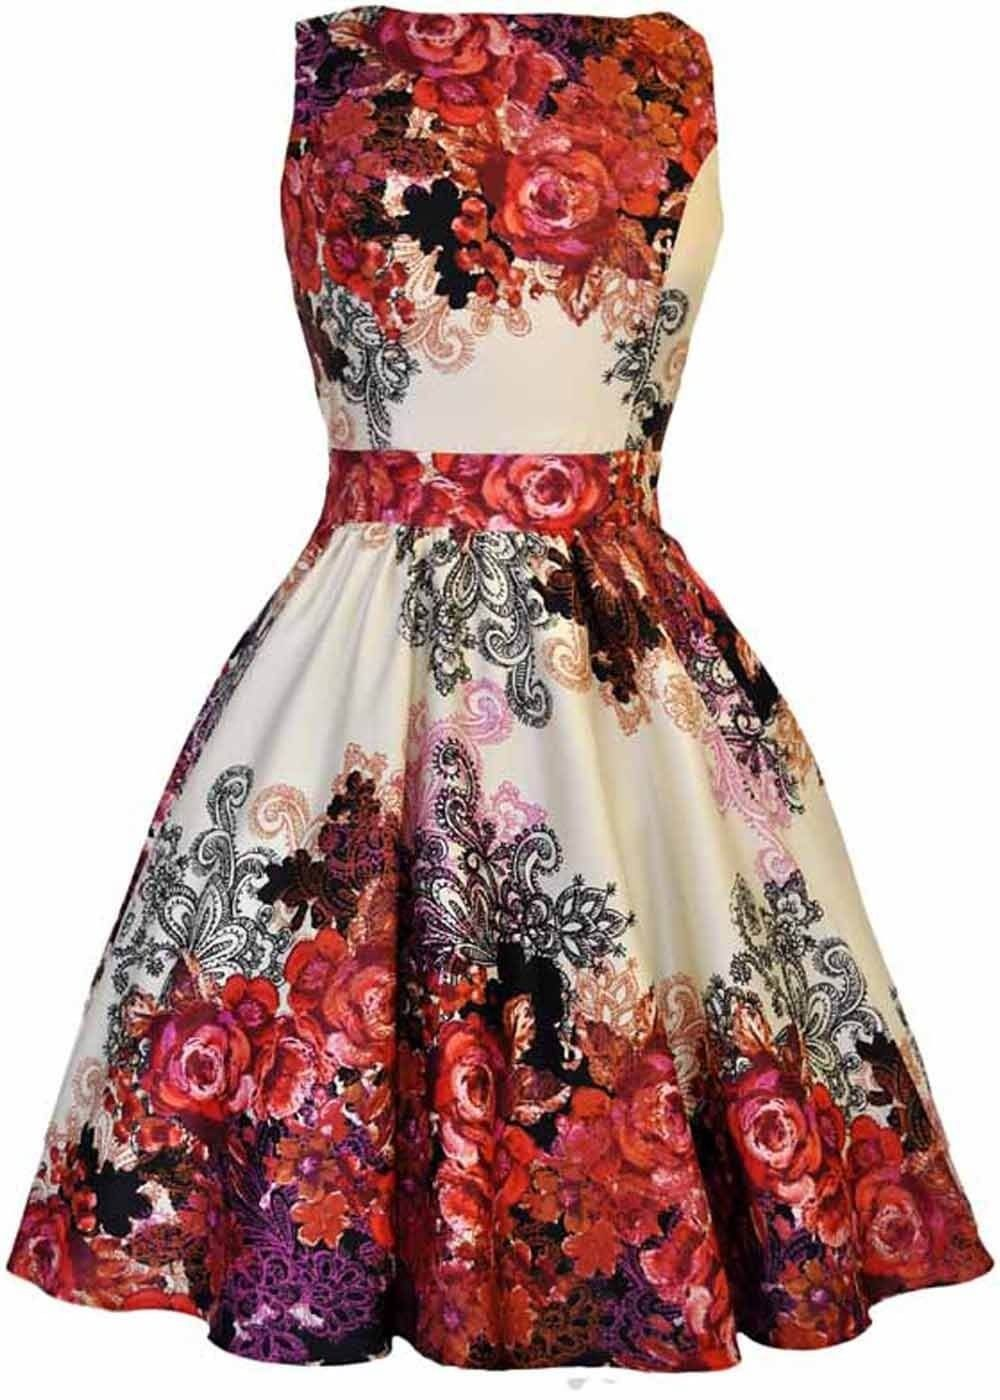 Lady V Abby Rose Collage Kleid Rot   Kleider Tine   Pinterest ... c81aa1f6a2